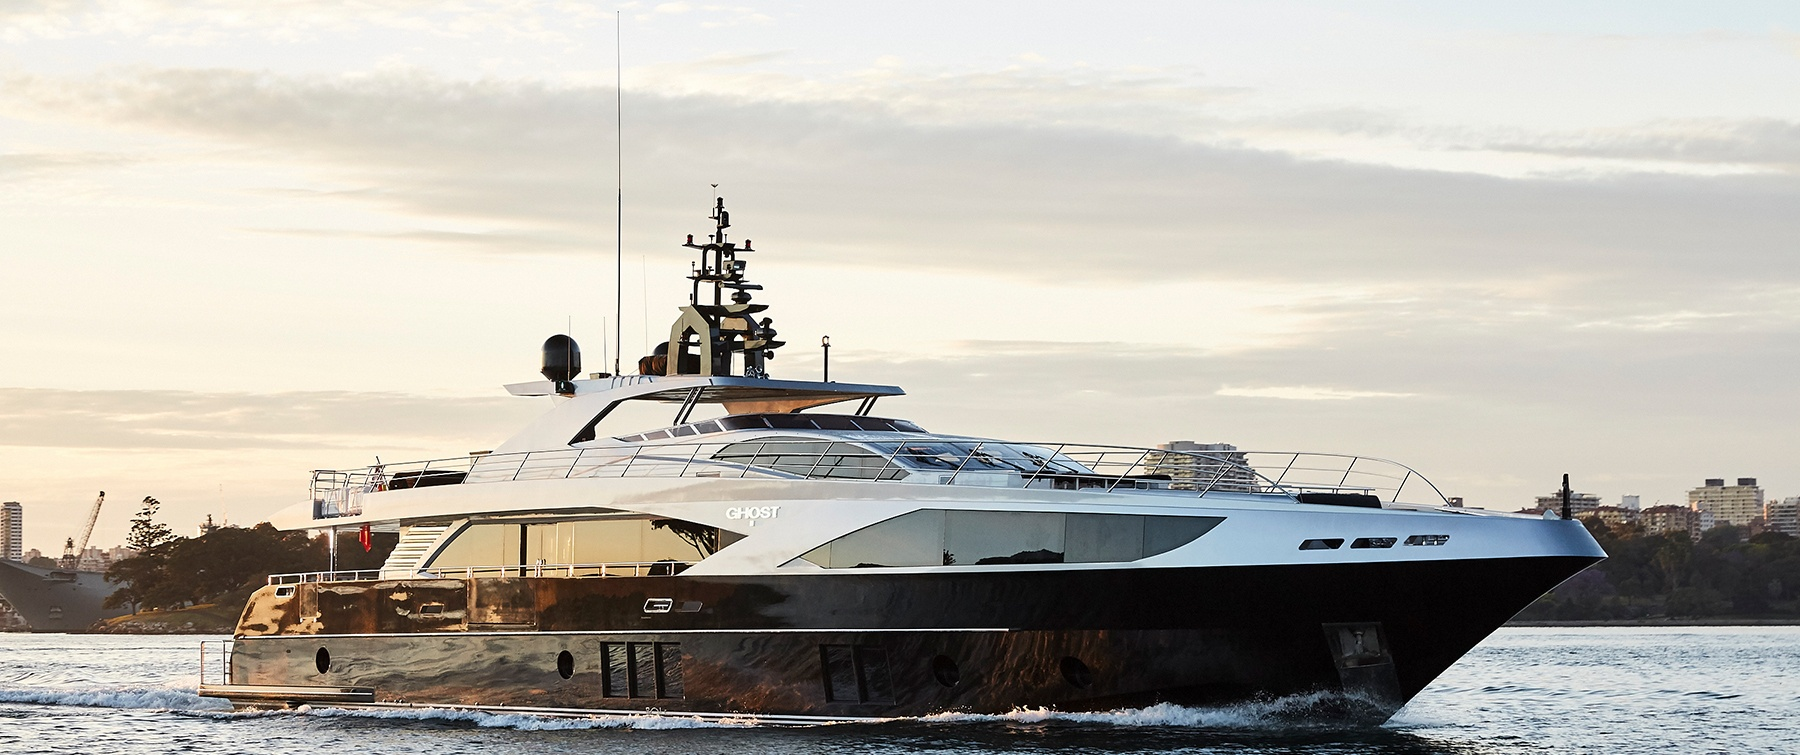 Majesty 122 (M/Y Ghost) Exetrior photo